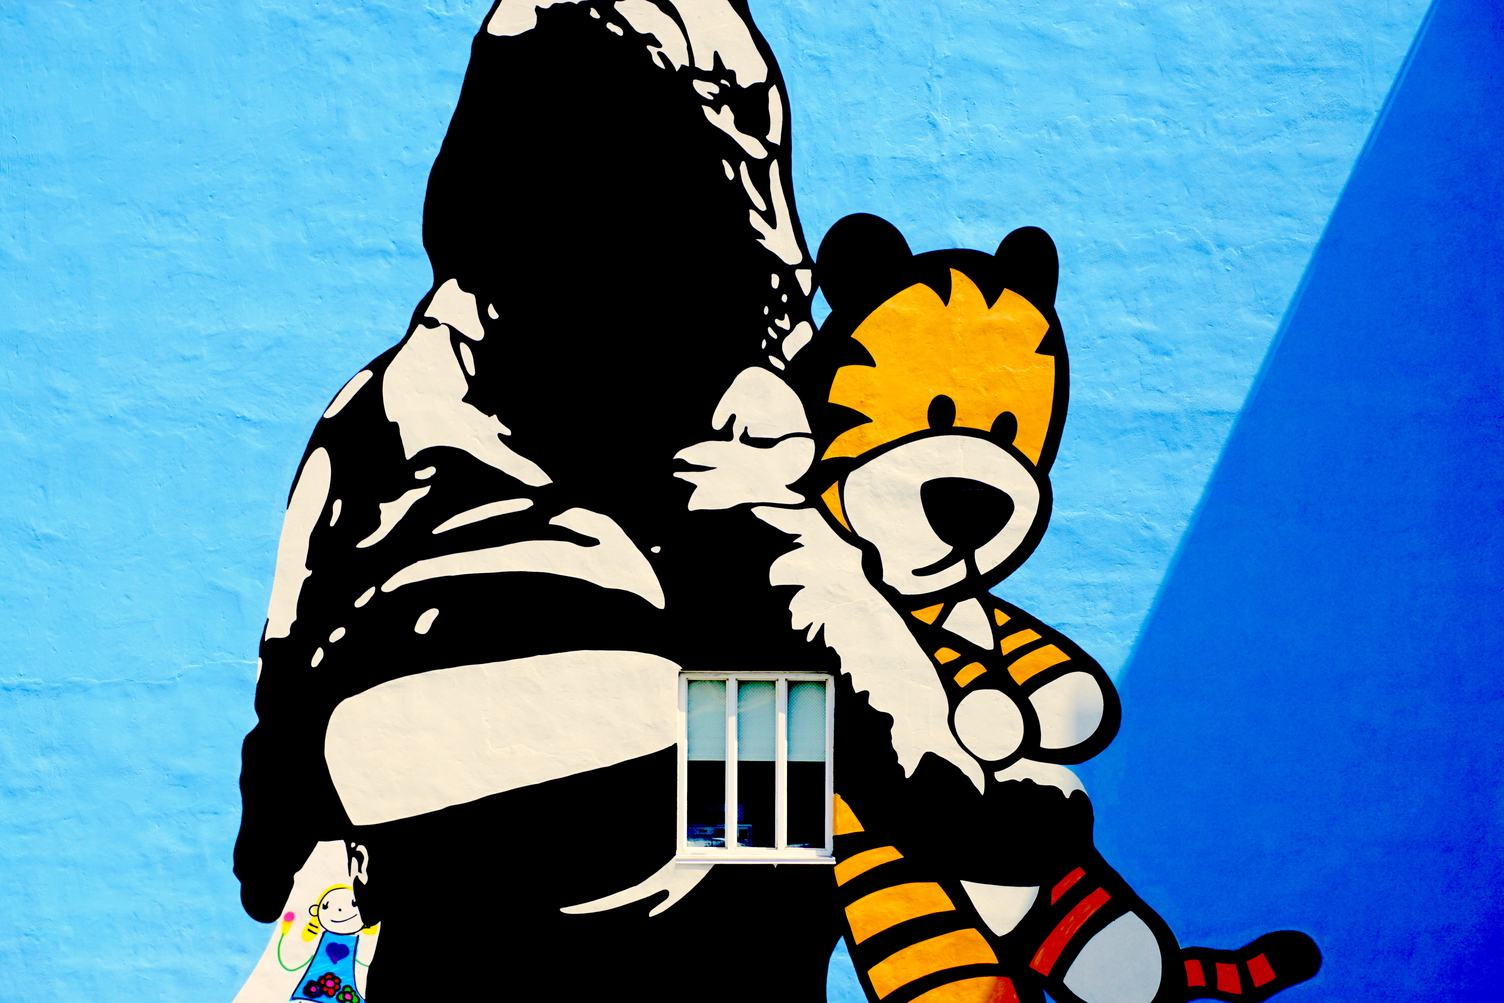 Mural of a Schoolgirl with Her Toy Tiger by Swiss Artist Bustart